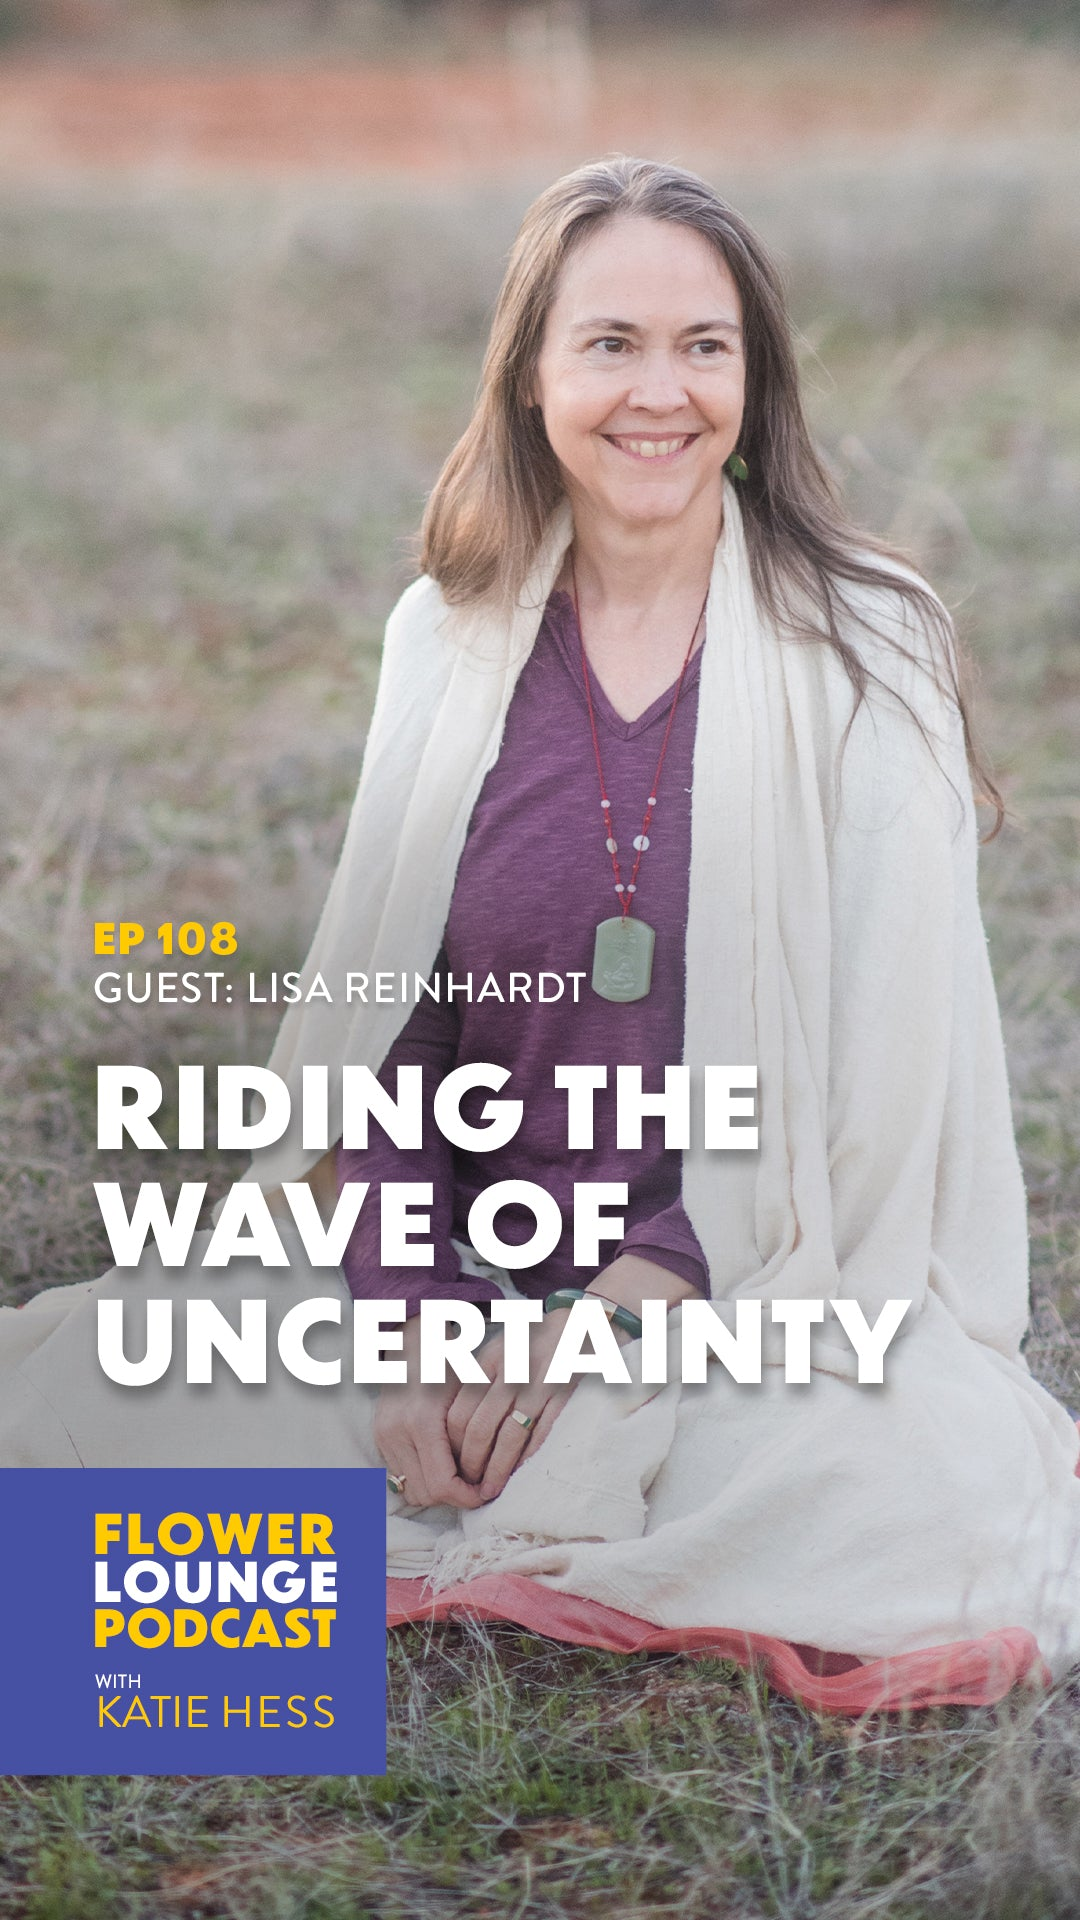 Riding the Wave of Uncertainty with Lisa Reinhardt on the Flowerlounge Podcast with Katie Hess